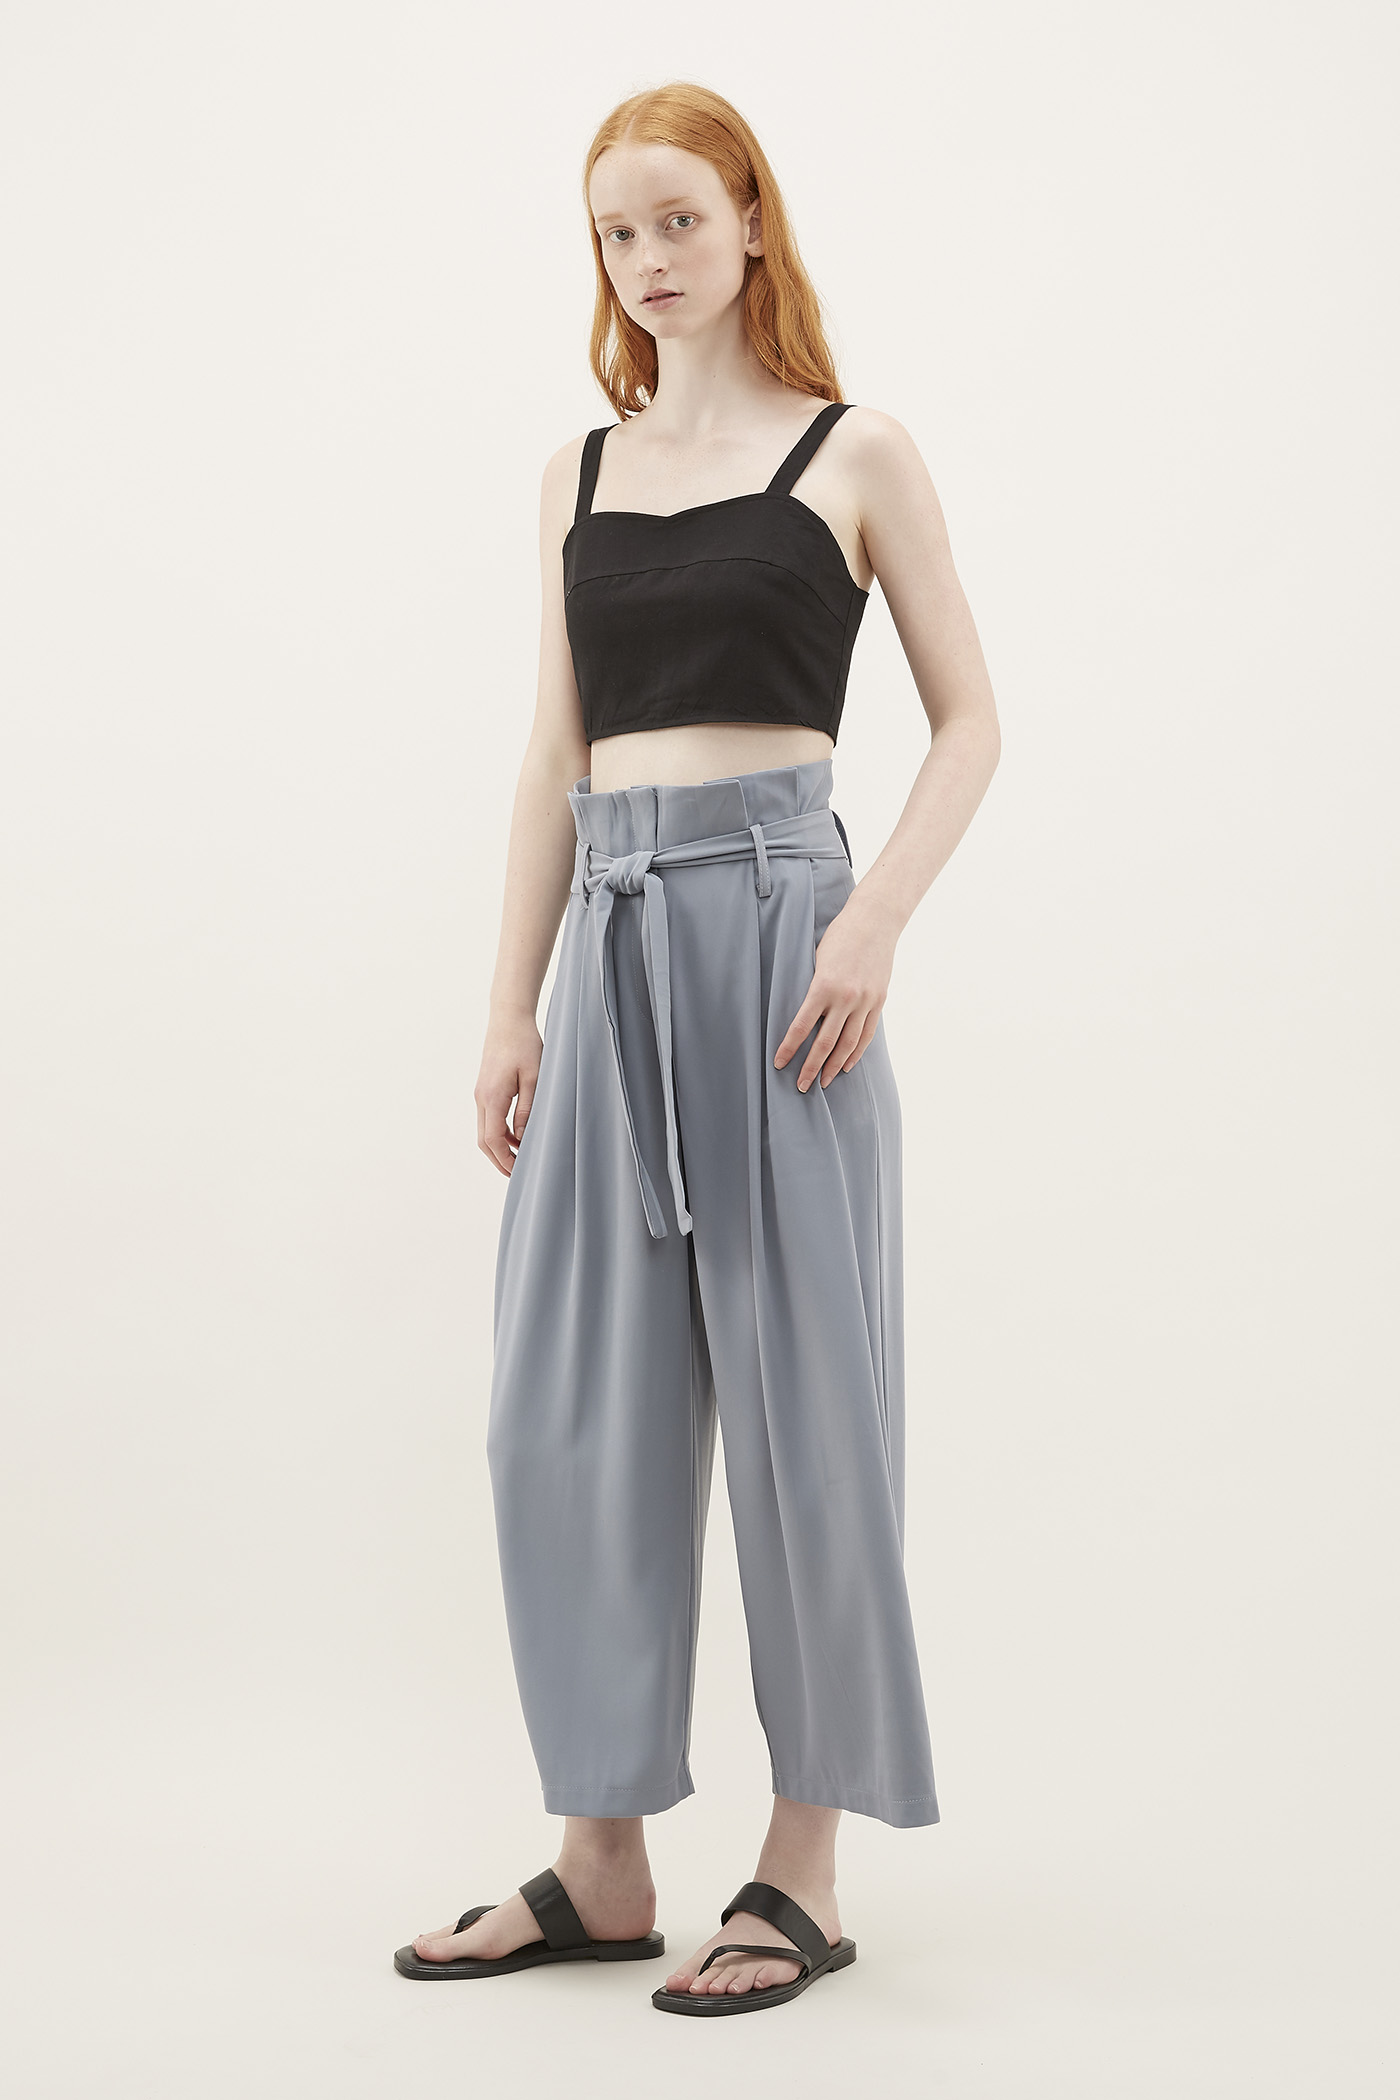 Felagi Crop Top